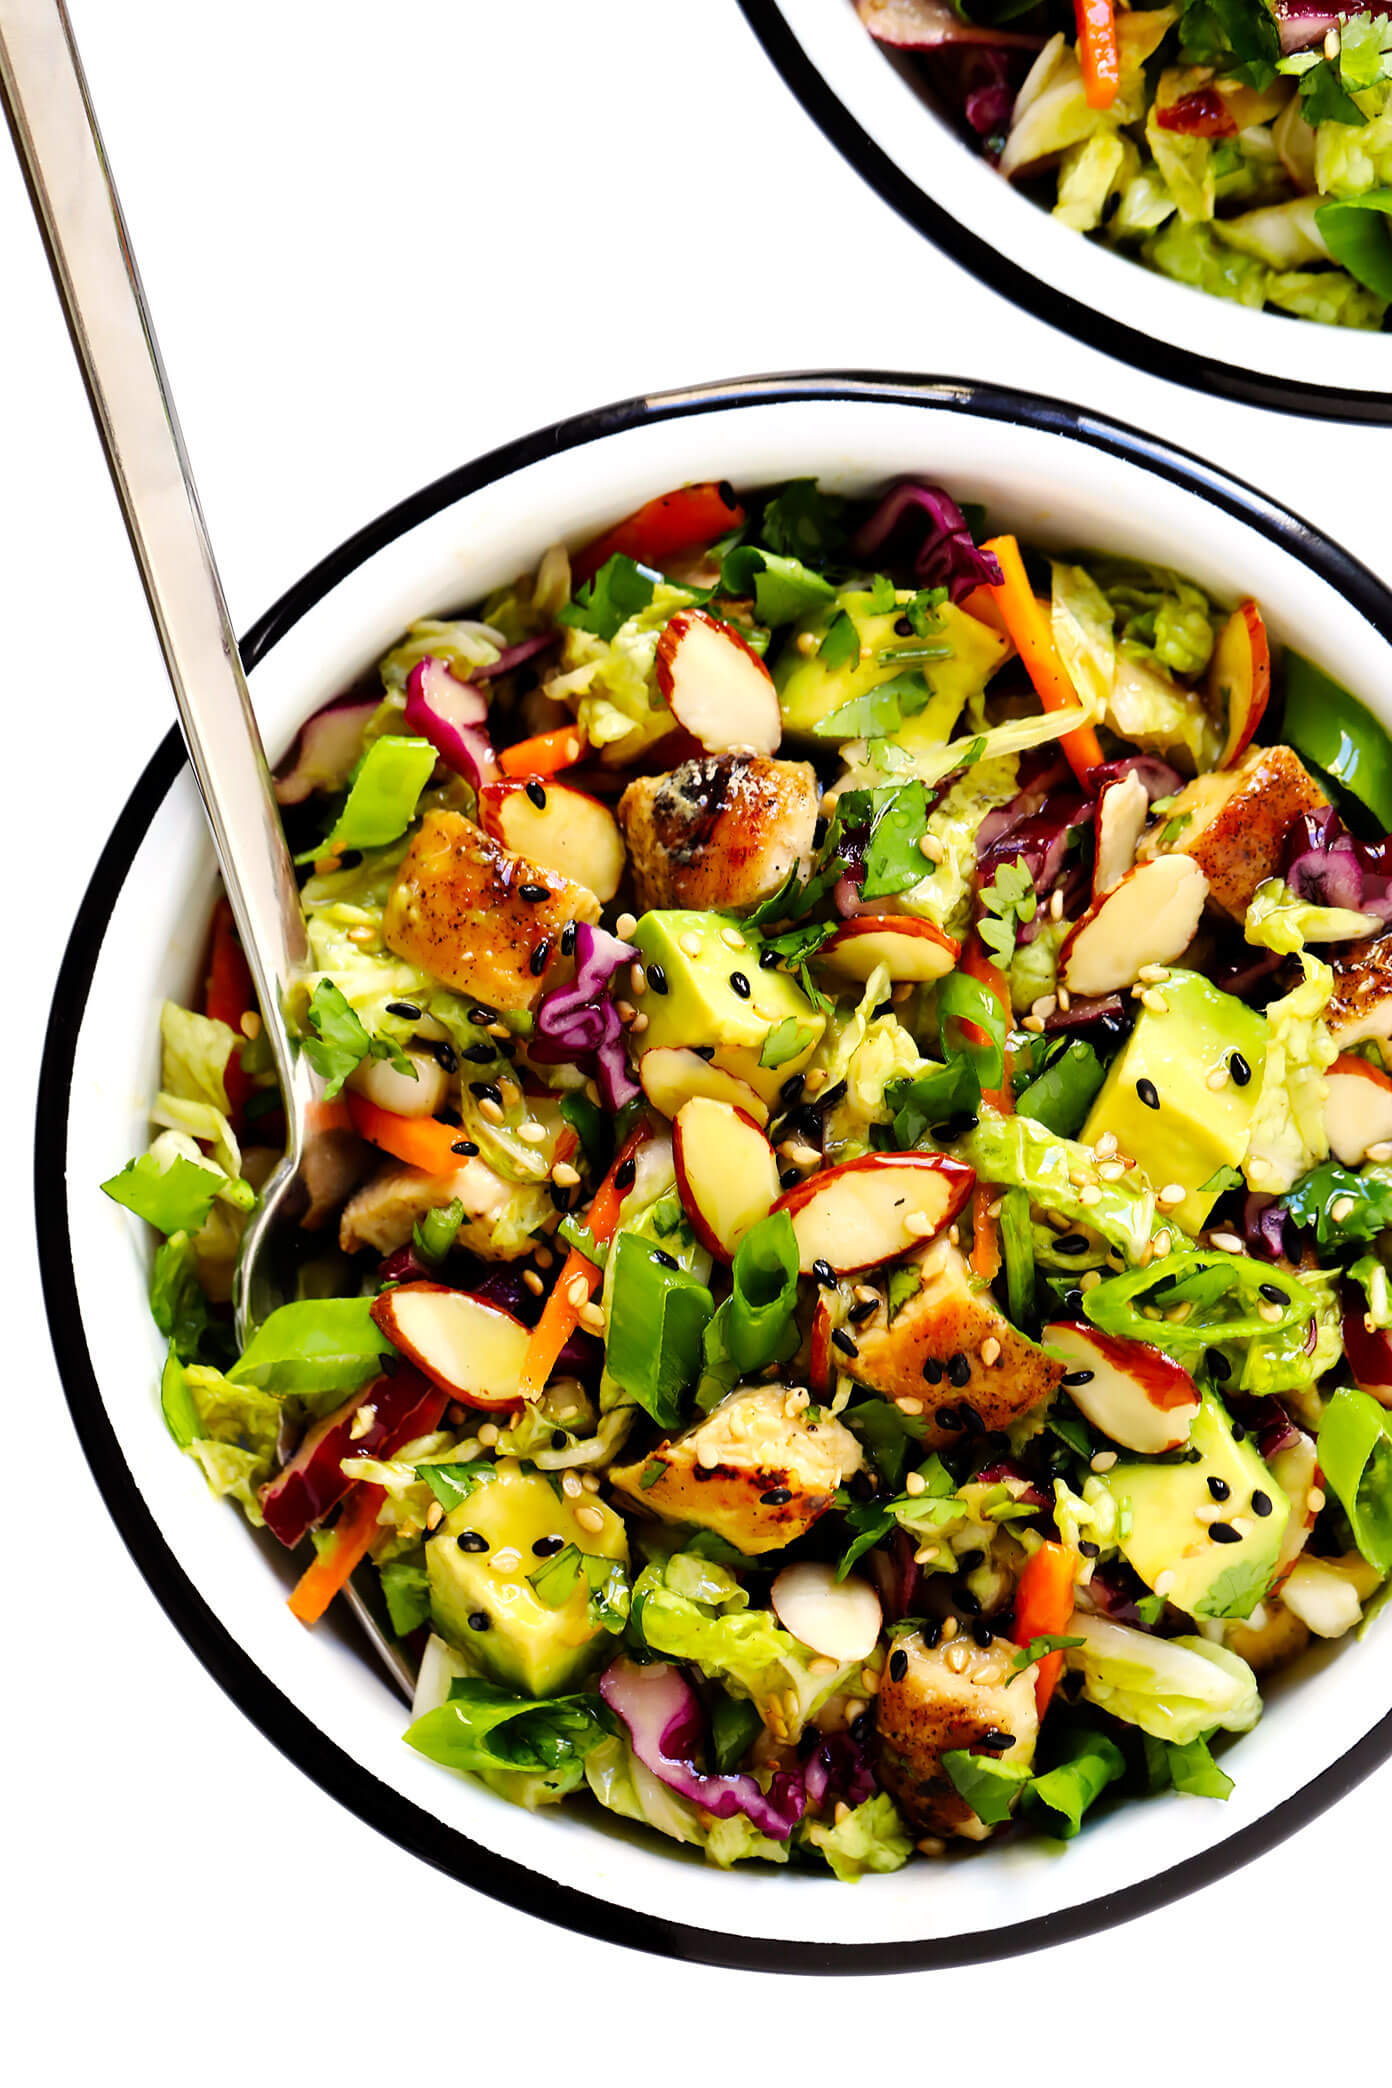 Sesame Chicken Salad Recipe with Almonds, Avocado and Cilantro